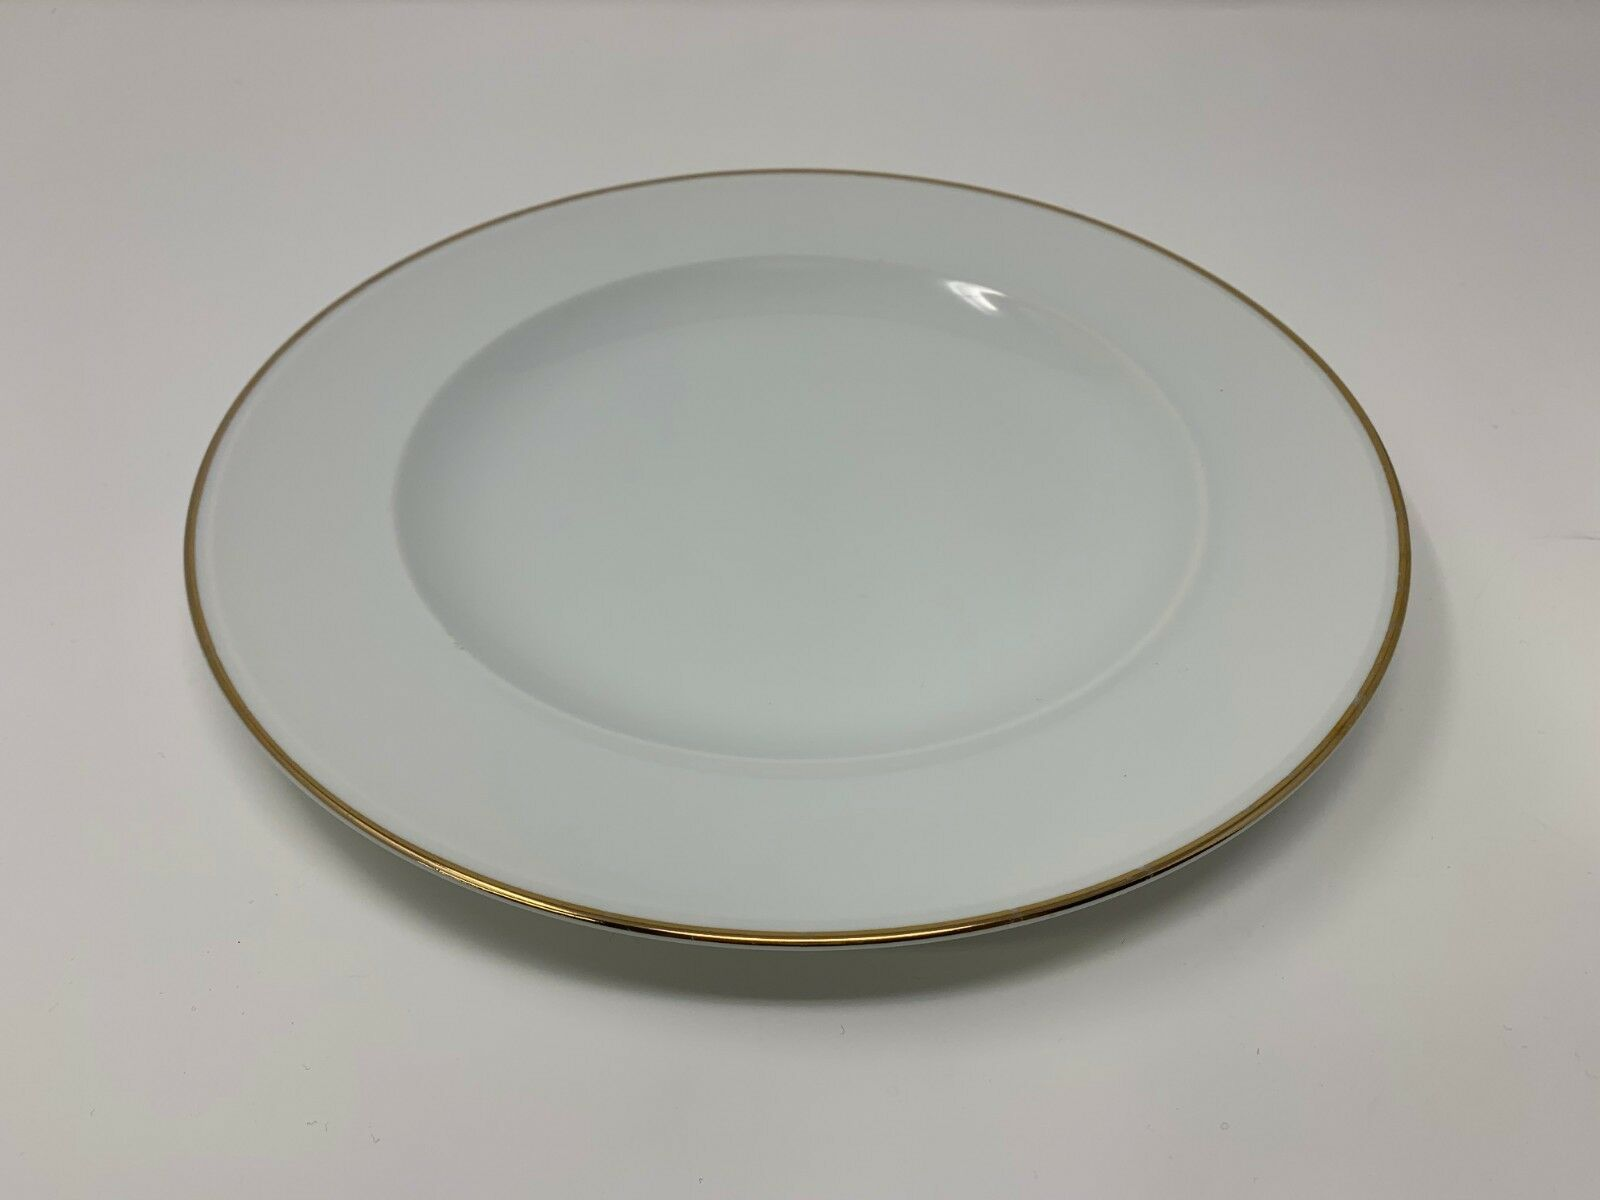 SOLD OUT Pottery Barn Japan Gold Gold Gold Rim GIGI Dinner Plate 10.5  (includes 6) e90c5a